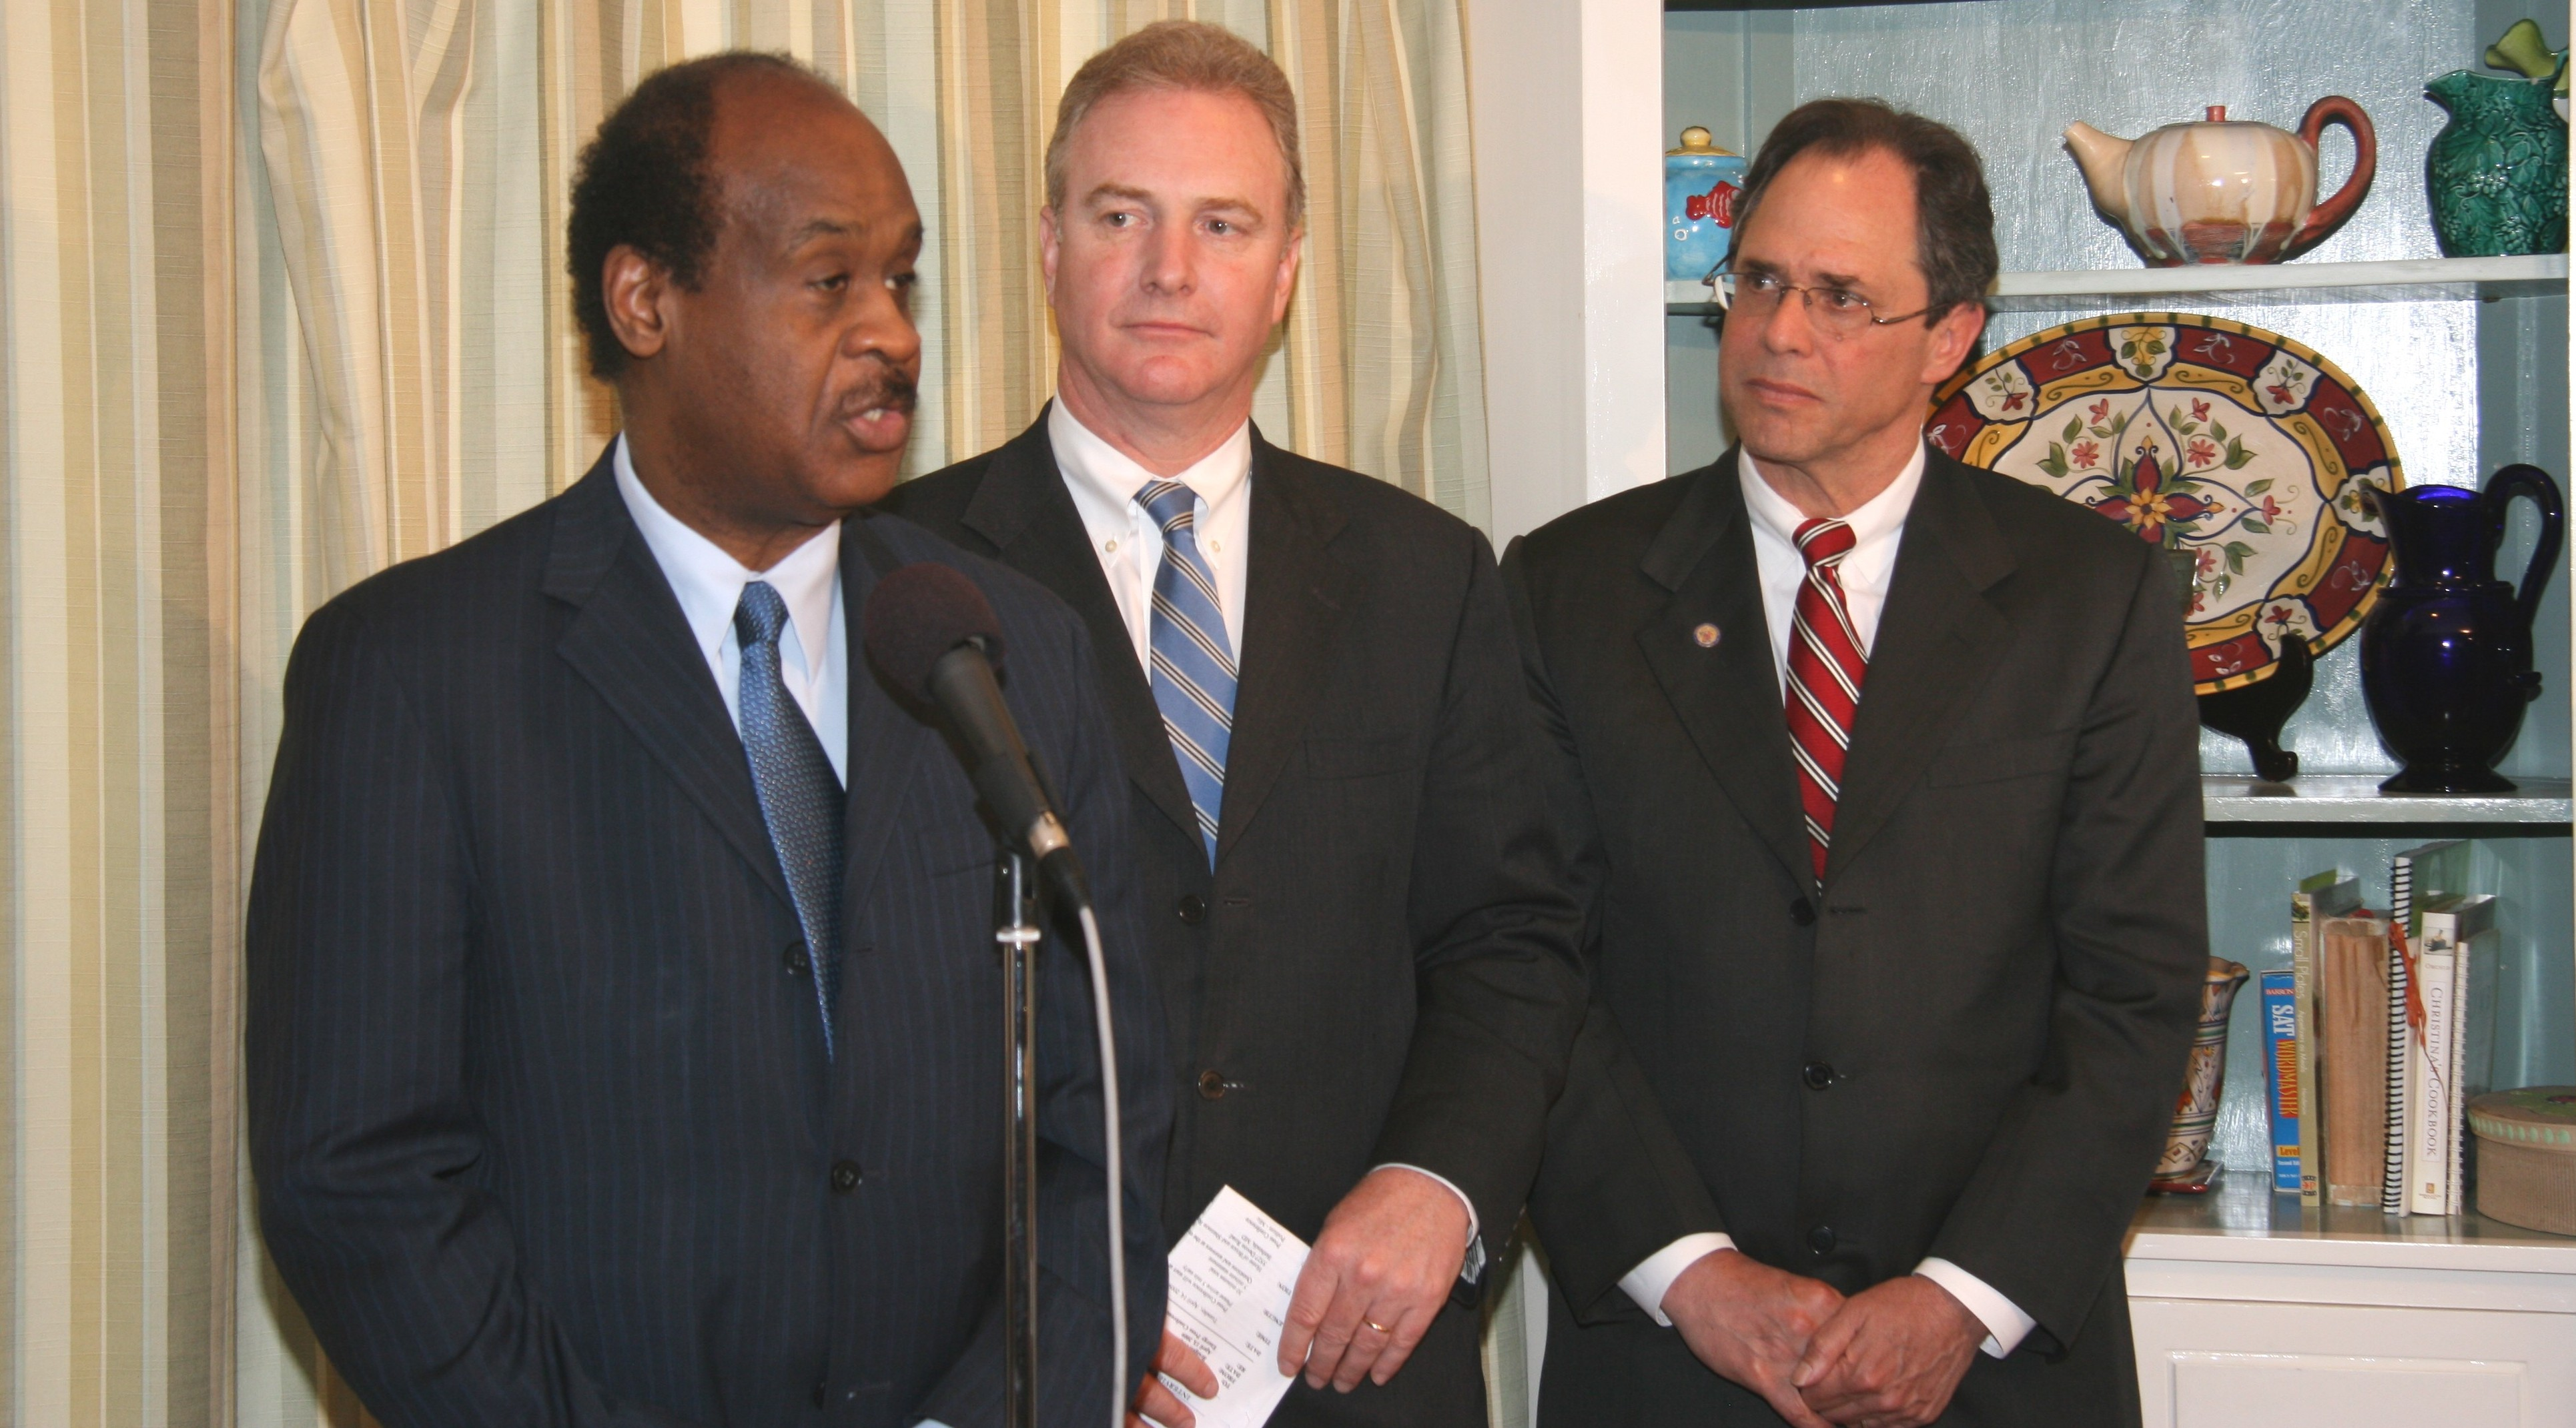 Isiah Leggett, Chris Van Hollen and Roger Berliner